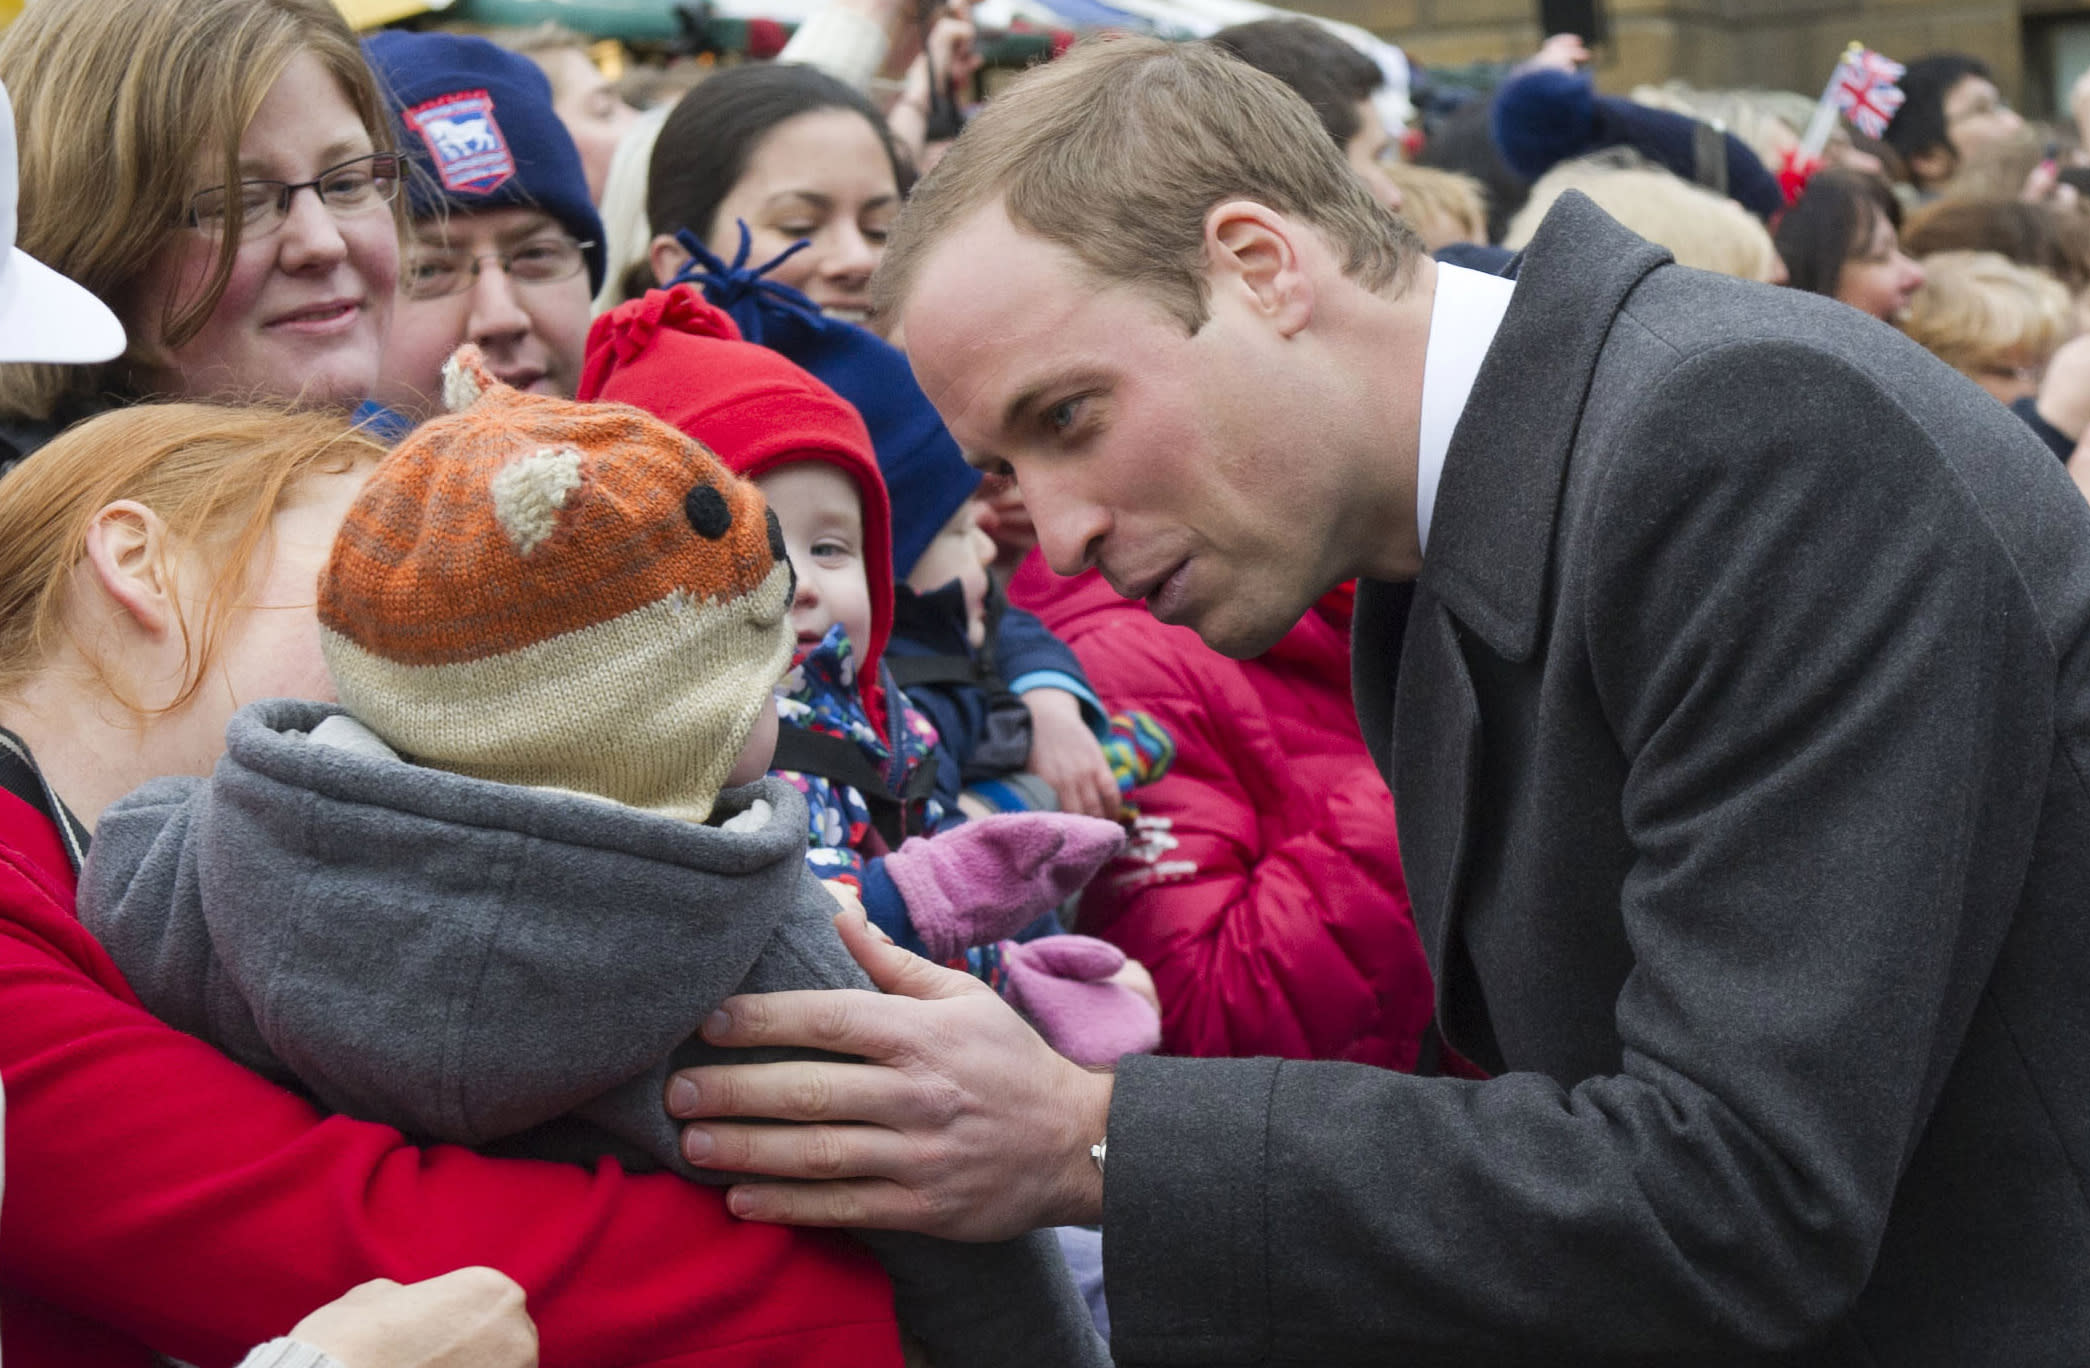 FILE - In this Wednesday Nov. 28, 2012 file photo Britain's Prince William meets with a young member of the public as she arrives at the Guildhall during a visit to Cambridge England. The Duke and Duchess of Cambridge are very pleased to announce that the Duchess of Cambridge is expecting a baby, St James's Palace officially announced Monday Dec. 3, 2012. (AP Photo/Arthur Edwards, File)